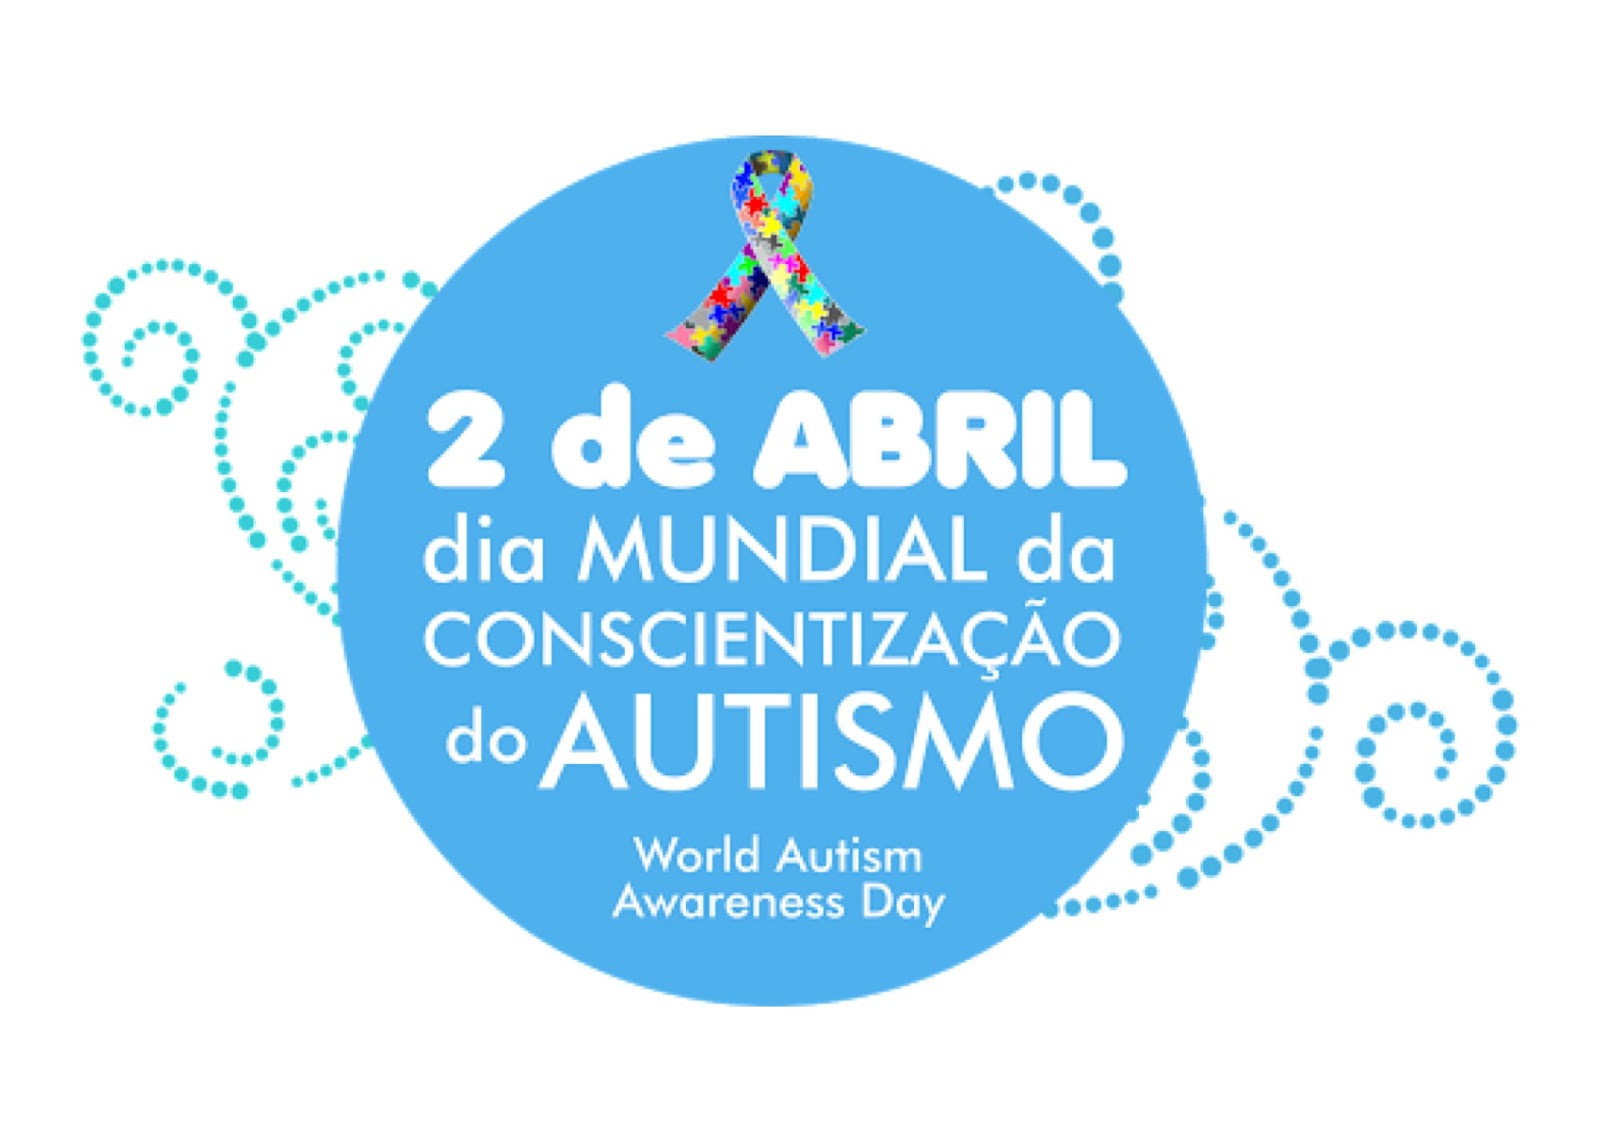 2 de abril dia do autismo